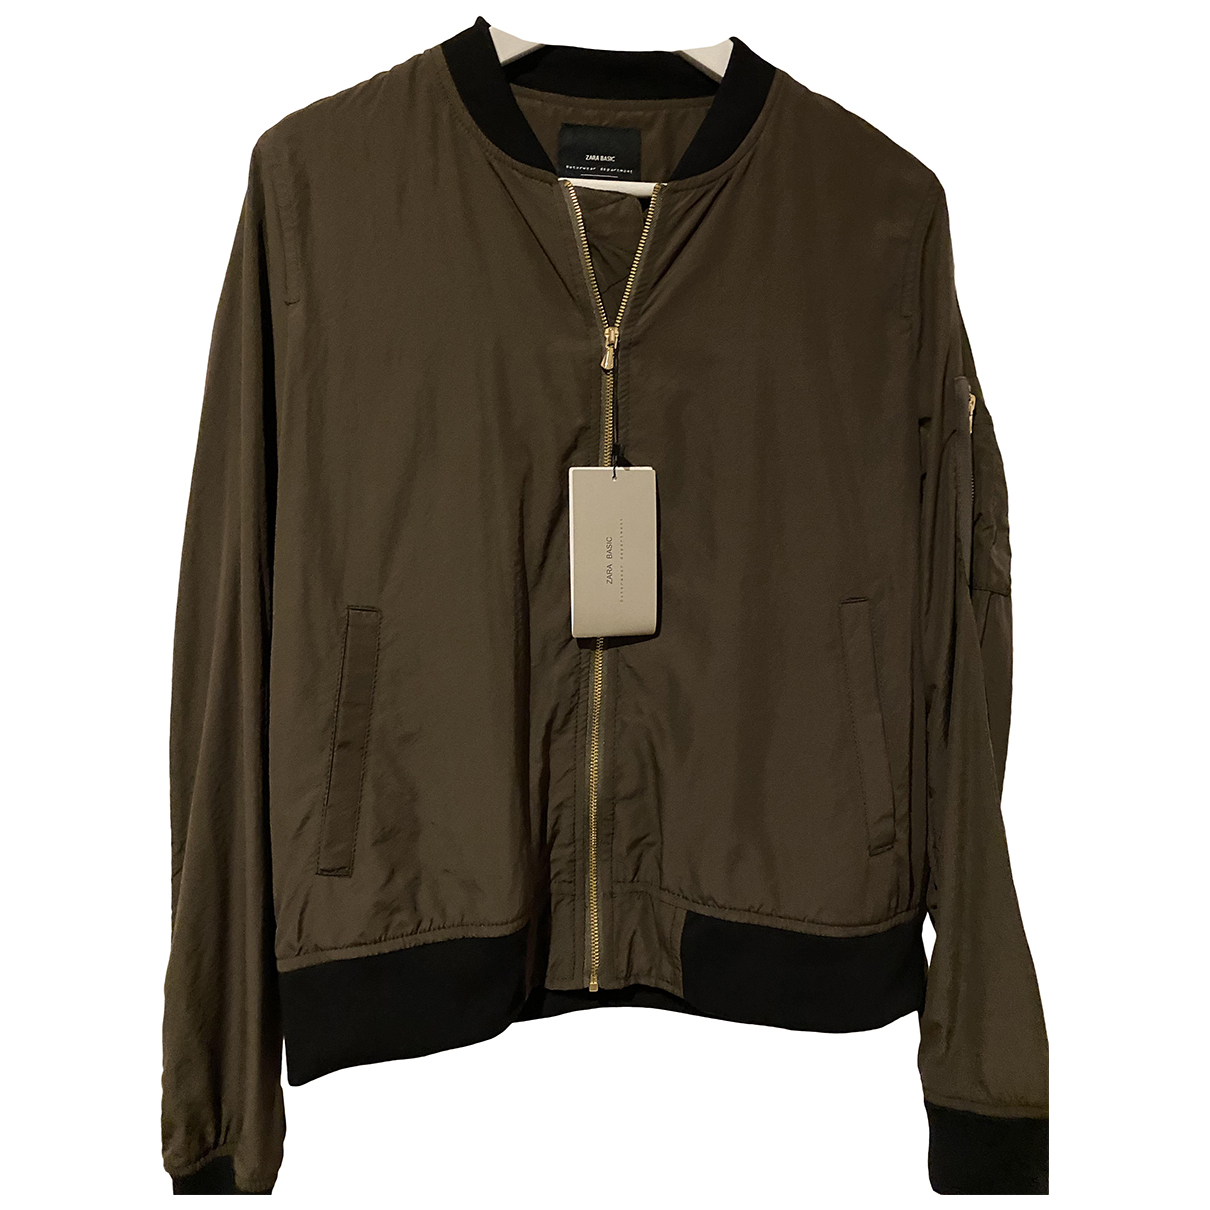 Zara \N Khaki Leather jacket for Women M International